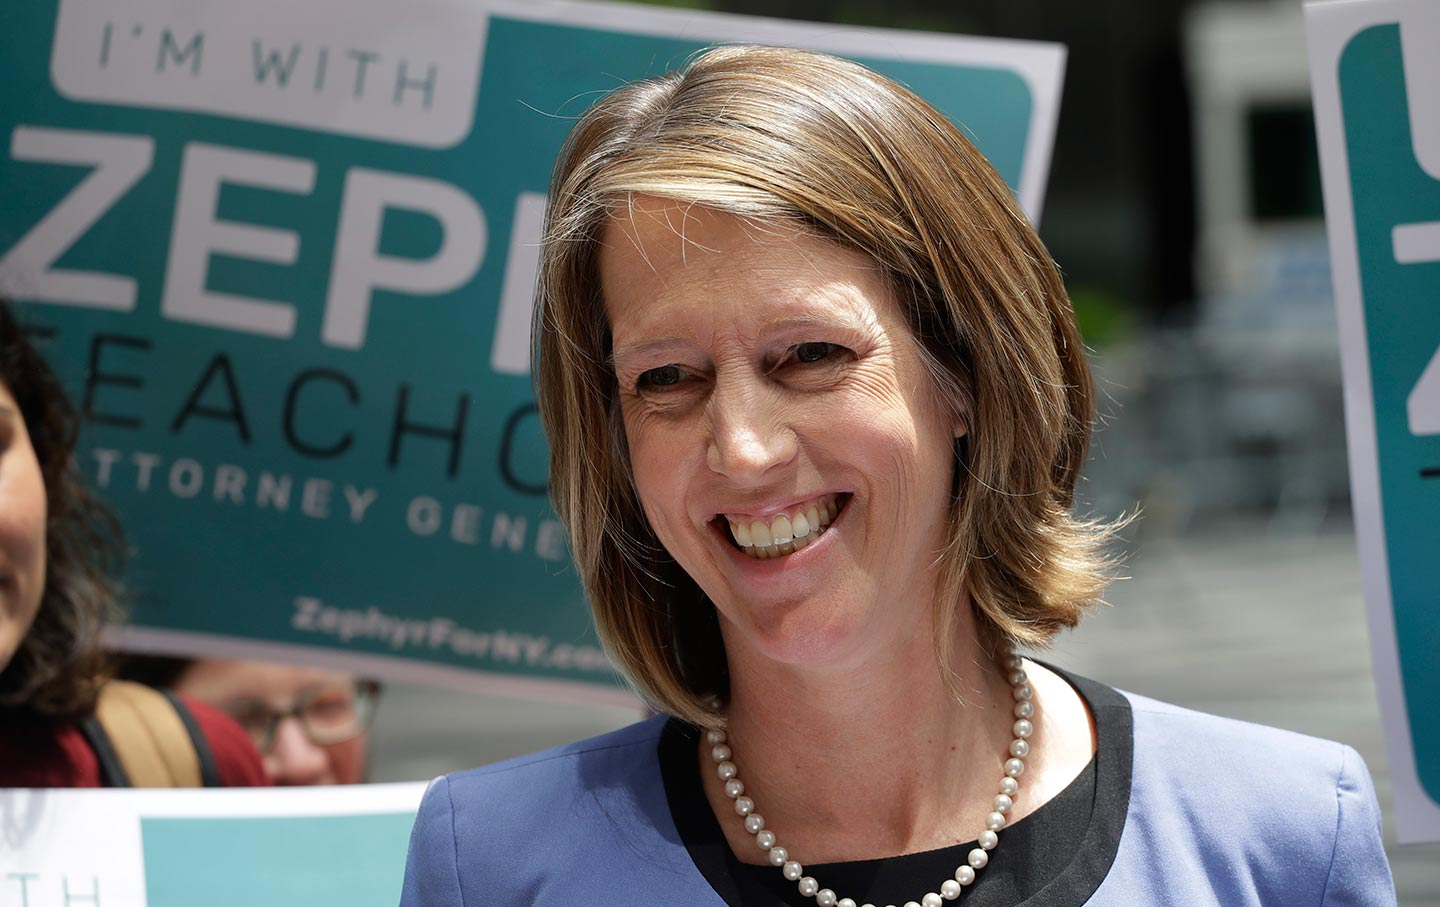 zephyr-teachout-attorney-general-ap-img